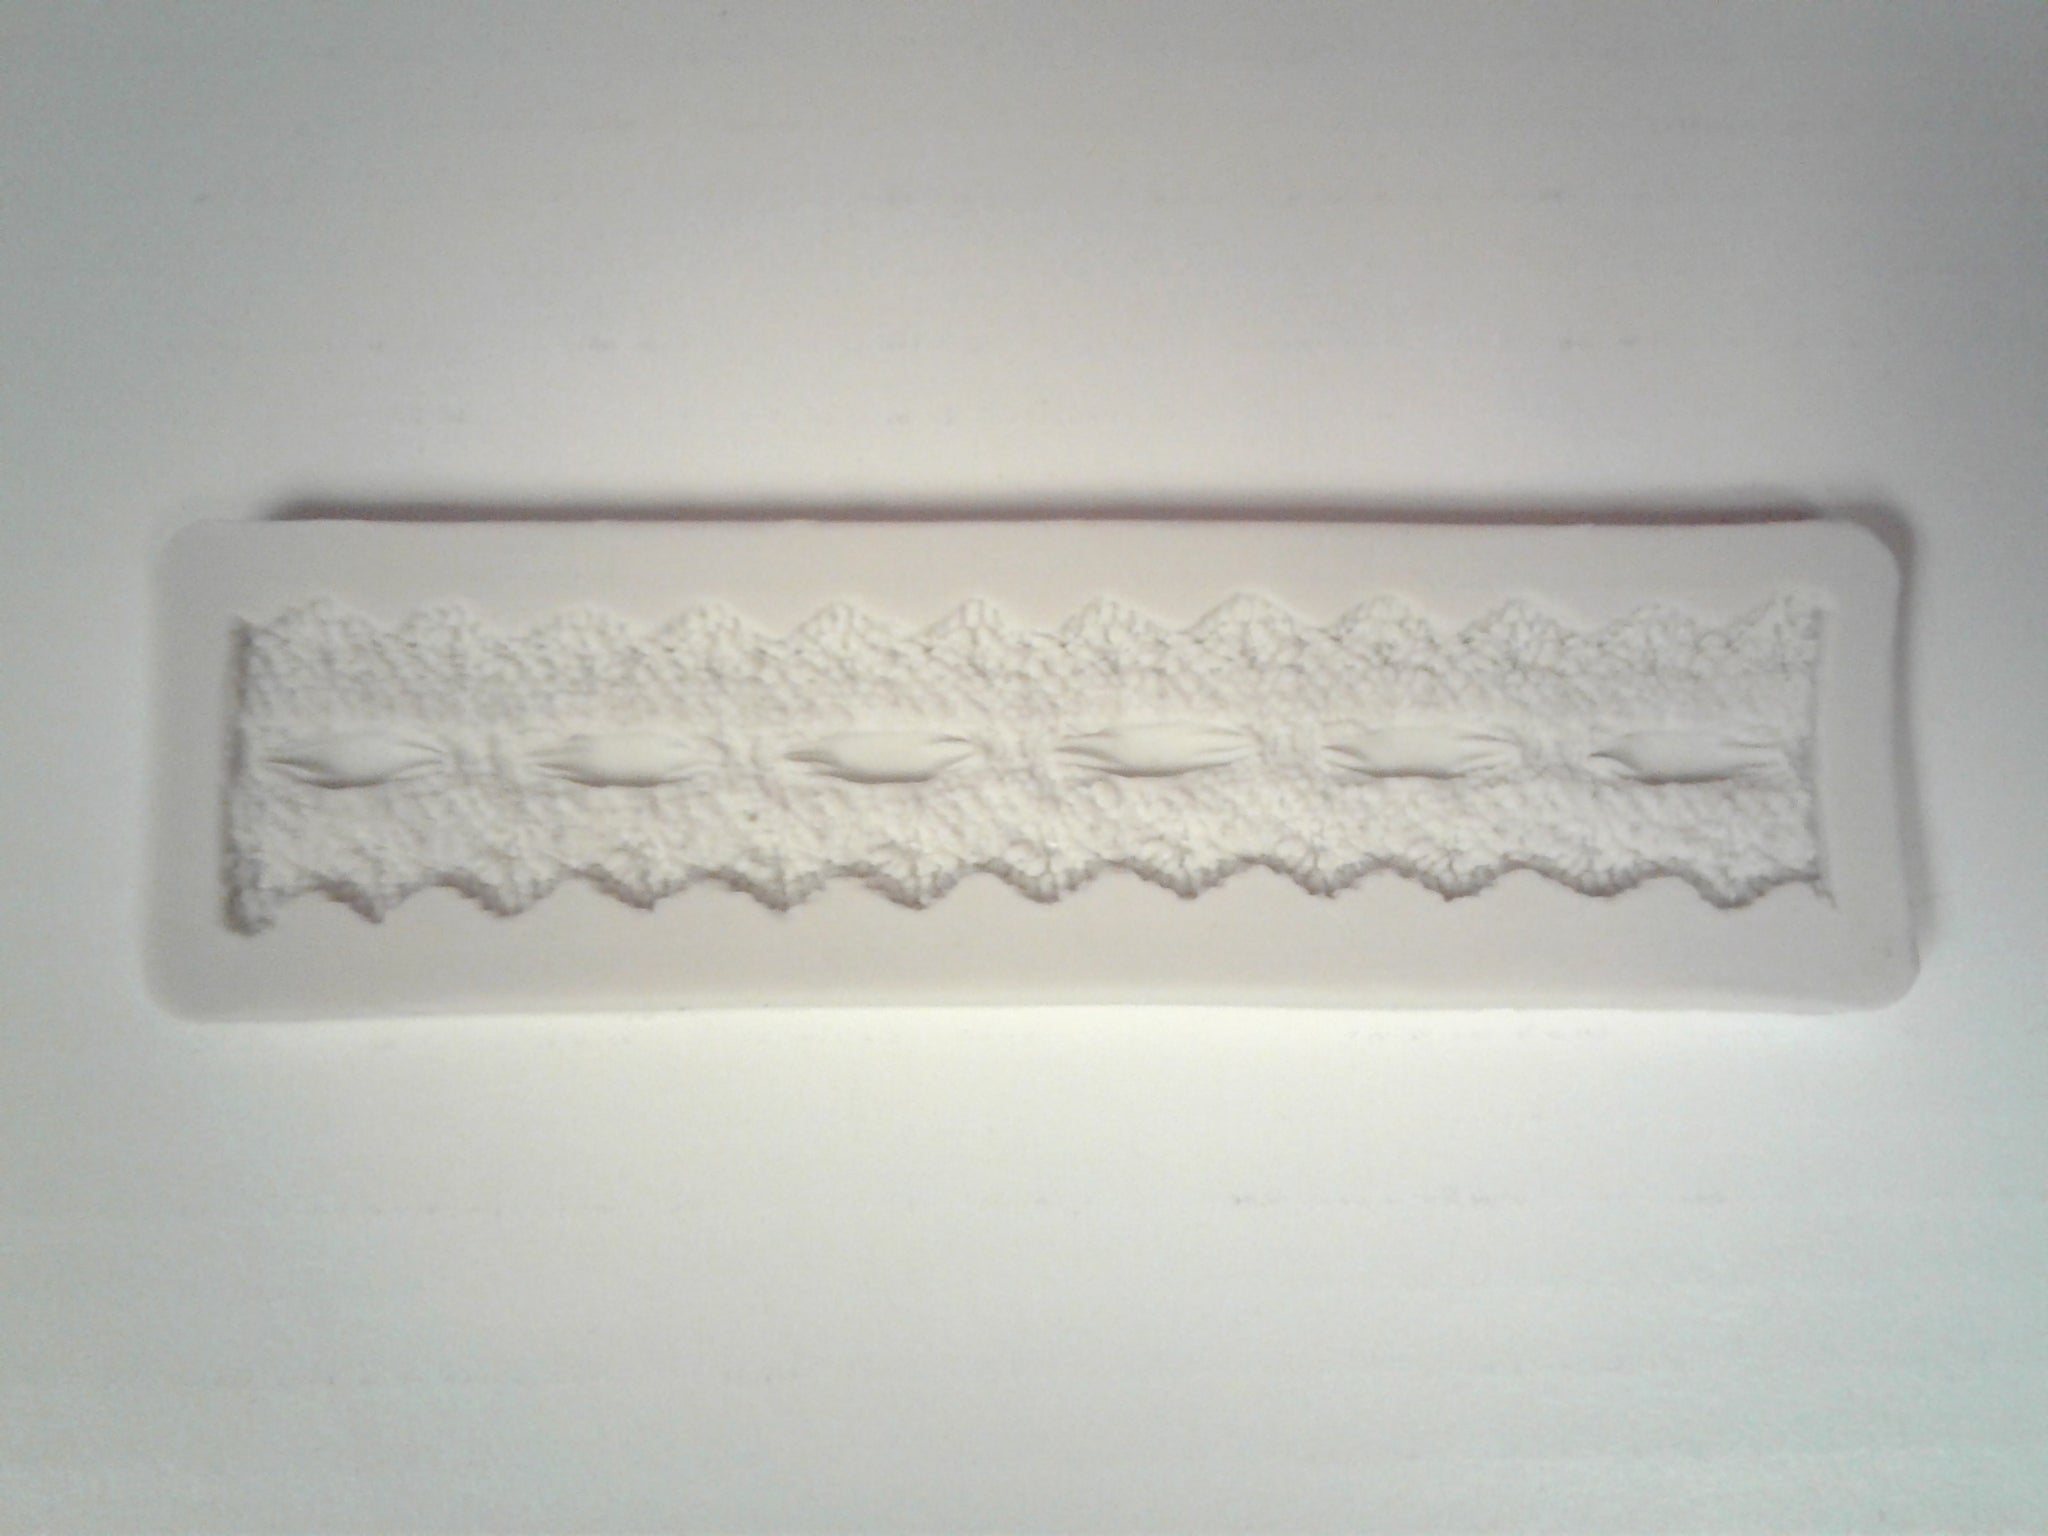 Lace and Ribbon Border Silicone Mold